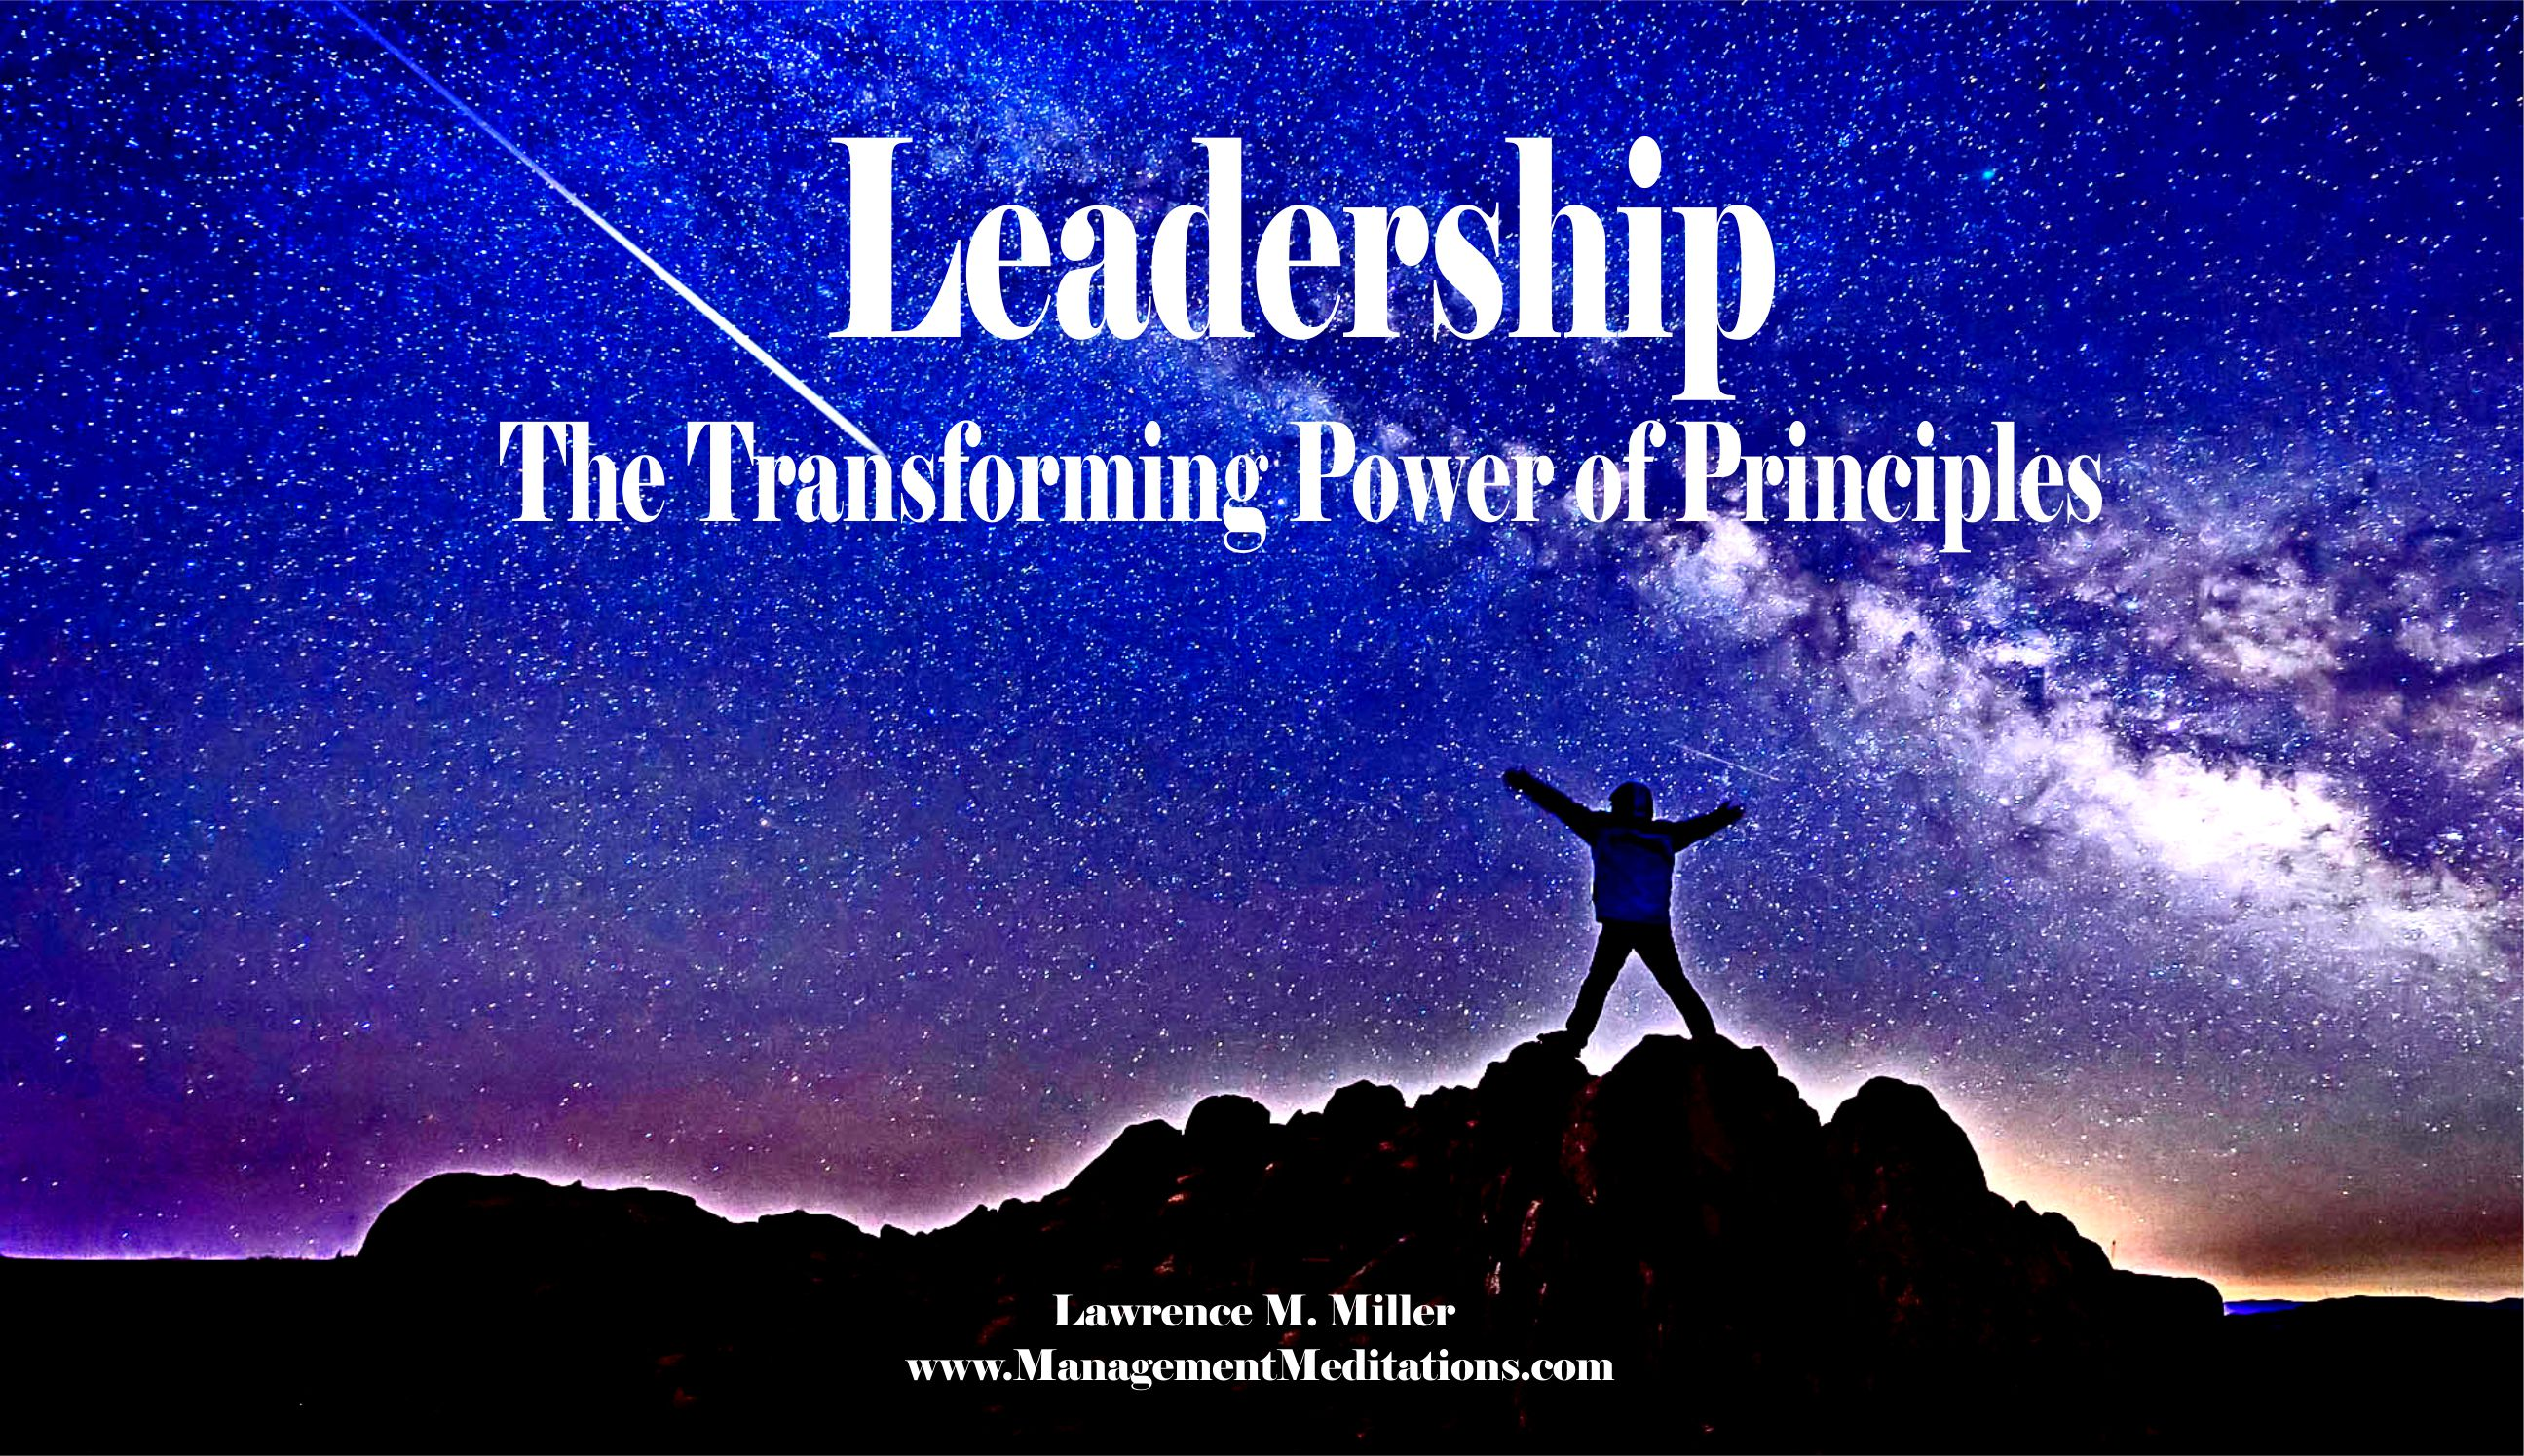 My latest course on the Transformational Power of Principles